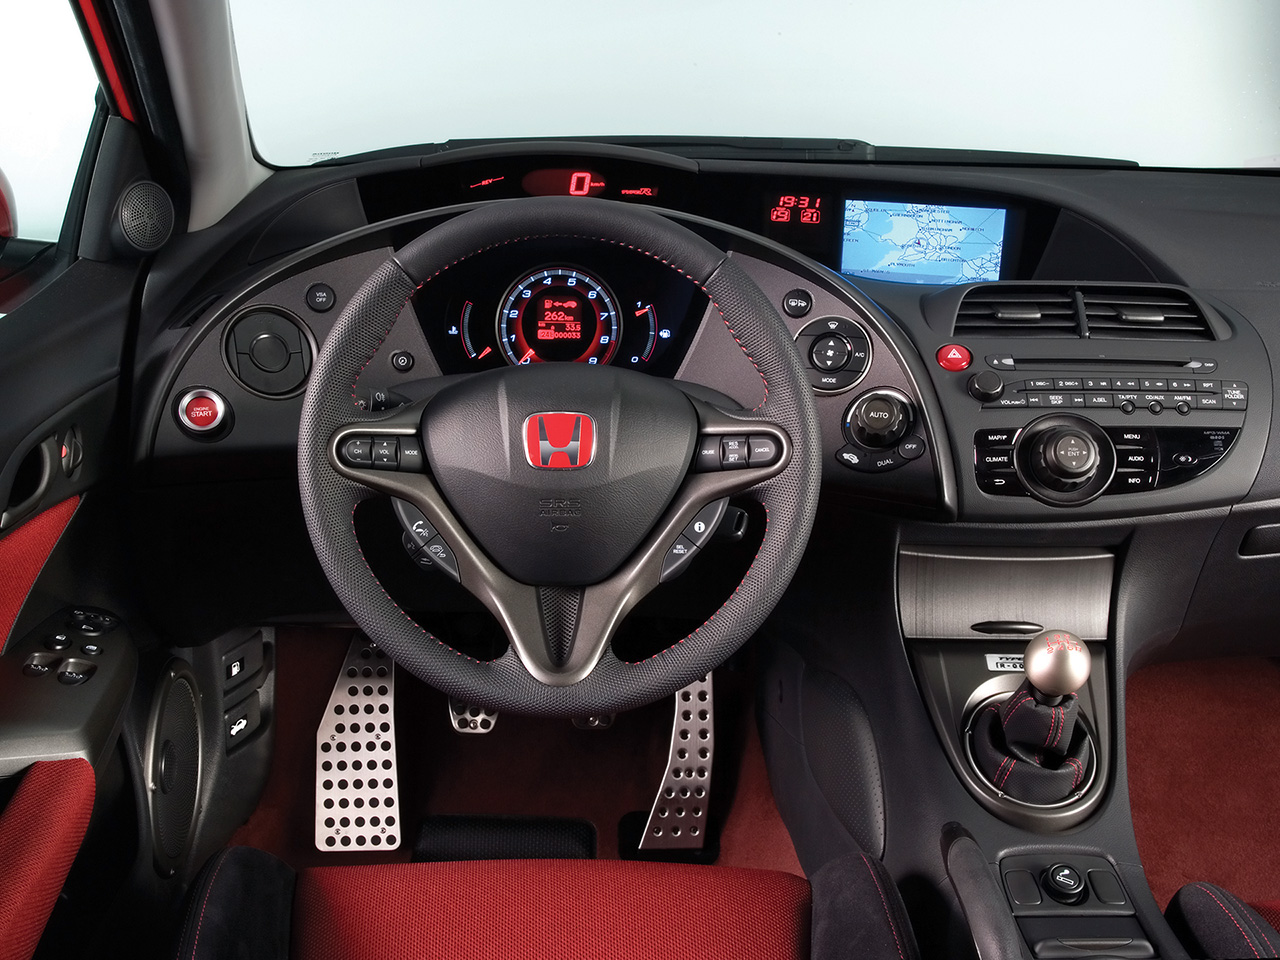 Fast Cars Honda Civic Si Interior Desing Looks Very Nice